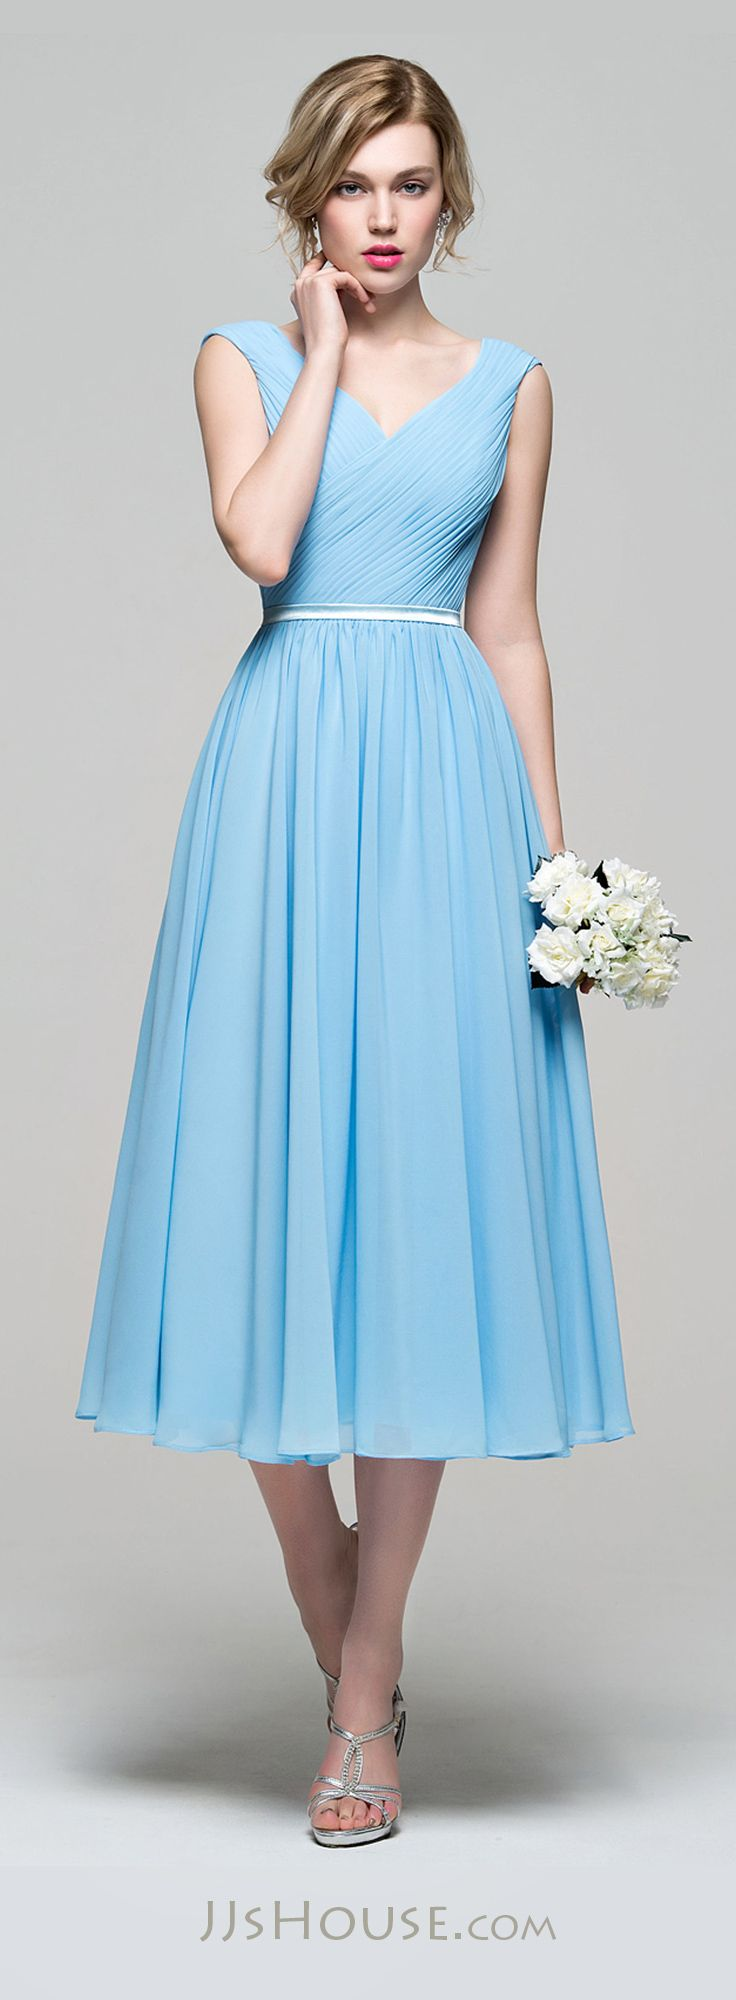 The 25+ best Tea length bridesmaid dresses ideas on ...